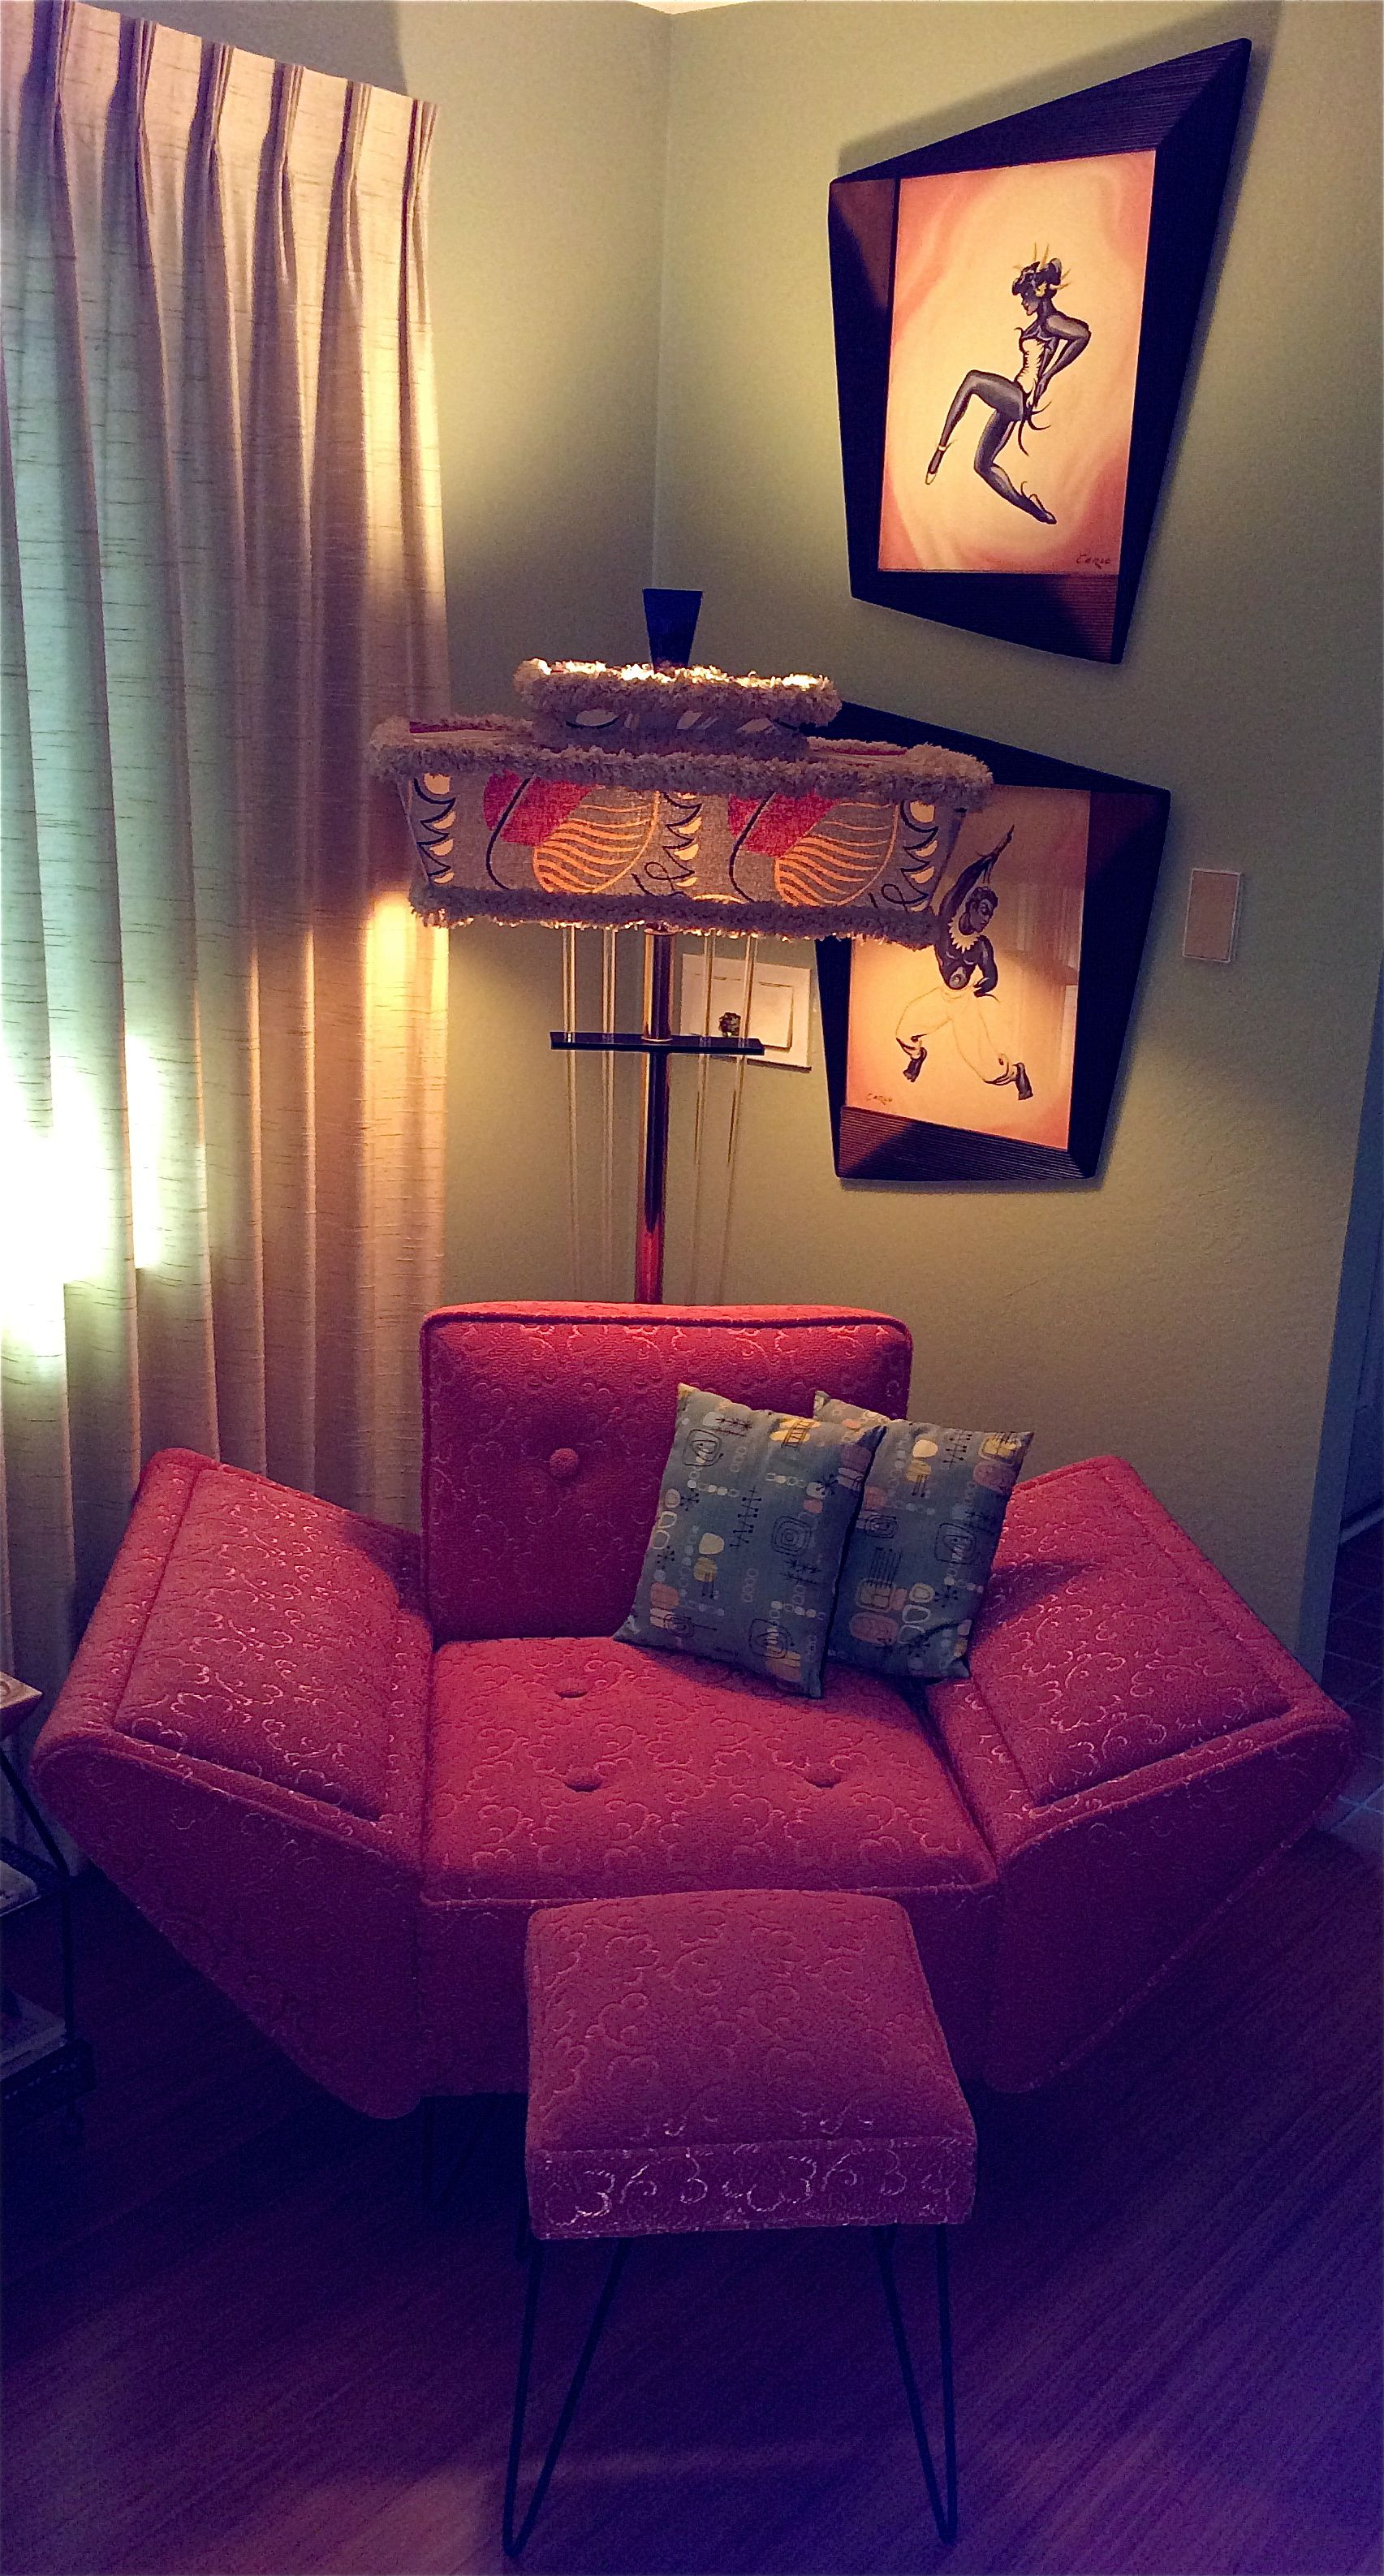 Pink Frieze Chair Moss Floor Lamp Pair Of Carlo Hollywood Watercolors Perfect Cat Id Add Aqua Barkcloth Drapes And Some Shag Pictures